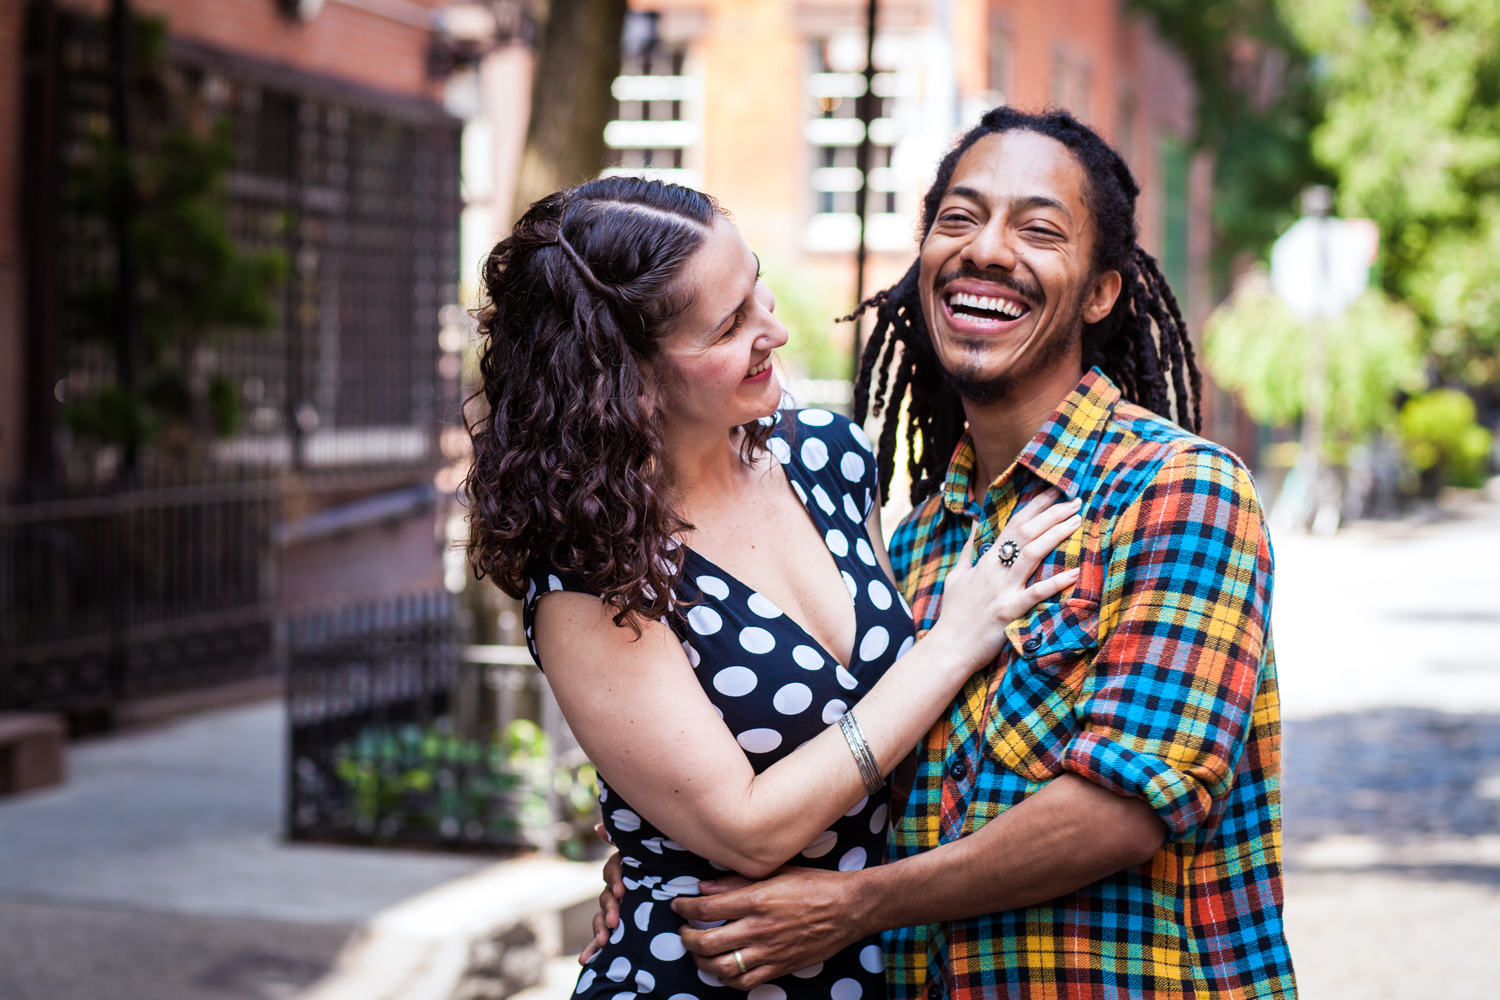 Meatpacking District engagement photos of couple laughing on a Greenwich Village street